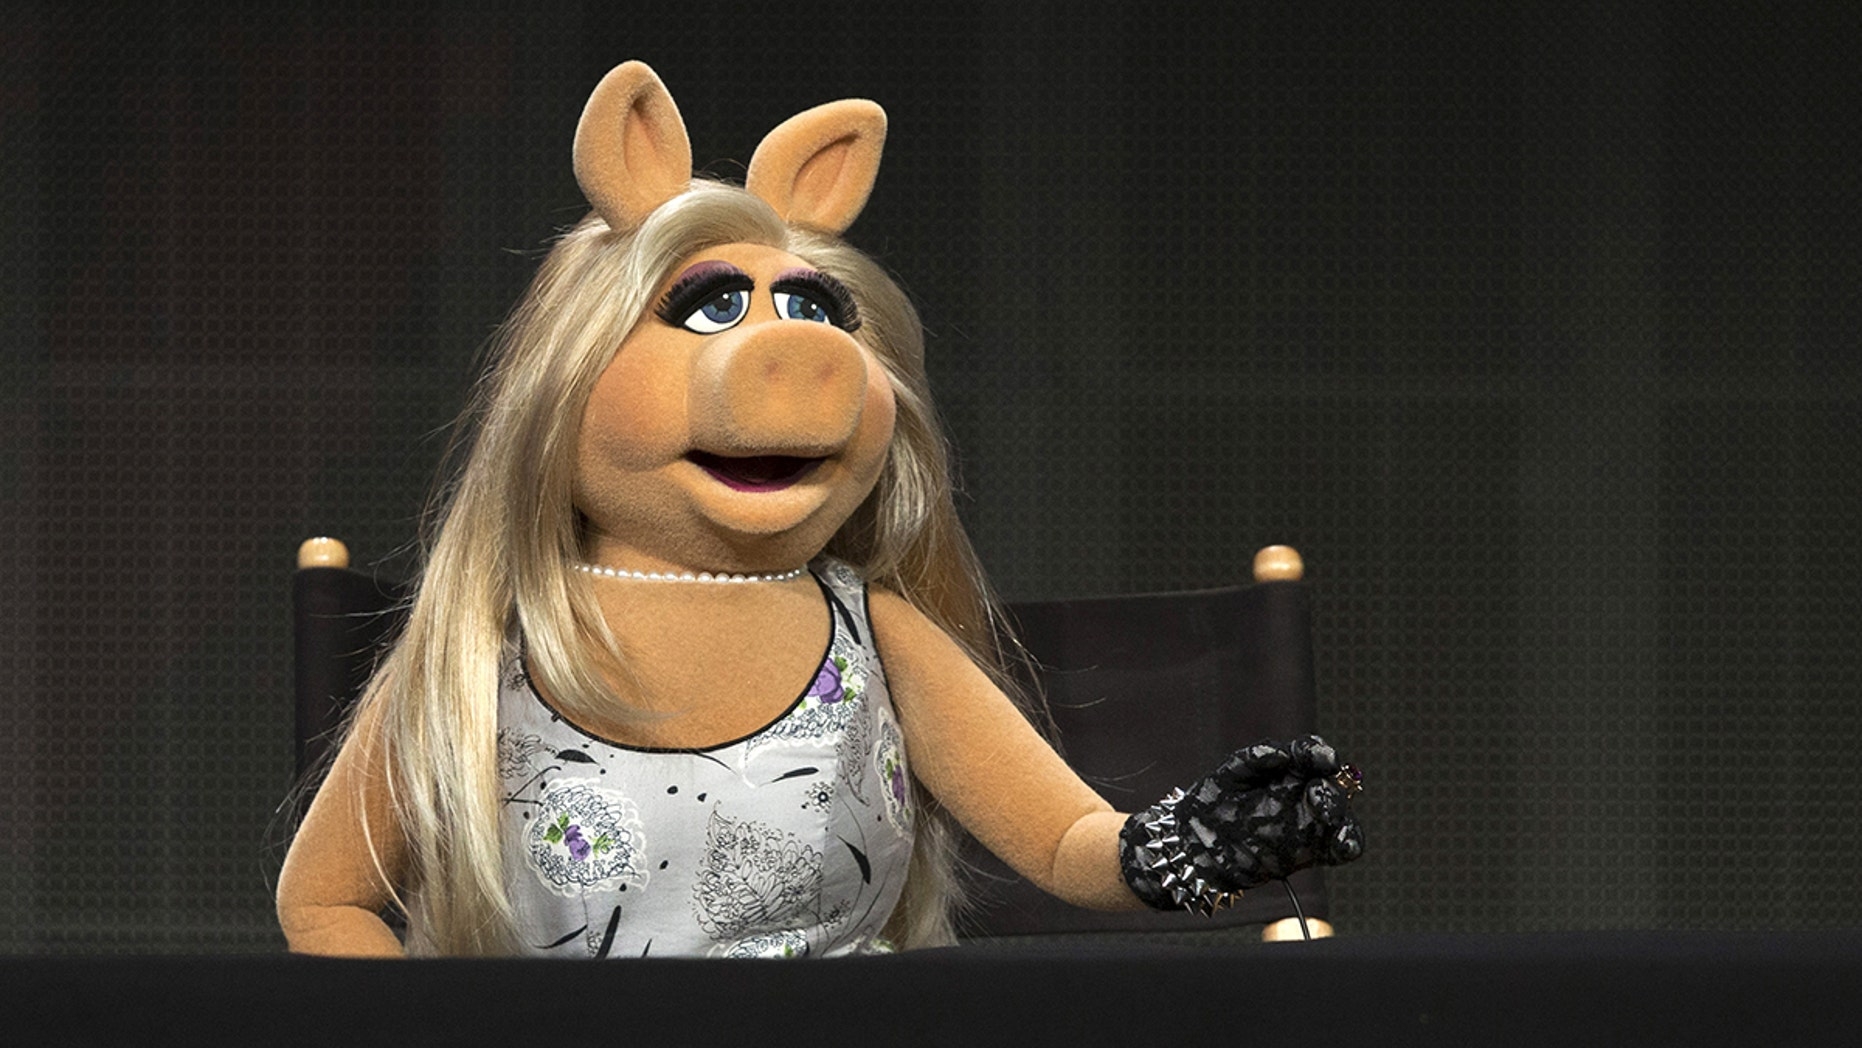 """The Muppets character Miss Piggy speaks at a panel for the Disney-ABC television series """"The Muppets"""" during the Television Critics Association Cable Summer Press Tour in Beverly Hills, California August 4, 2015. REUTERS/Mario Anzuoni - GF20000013542"""